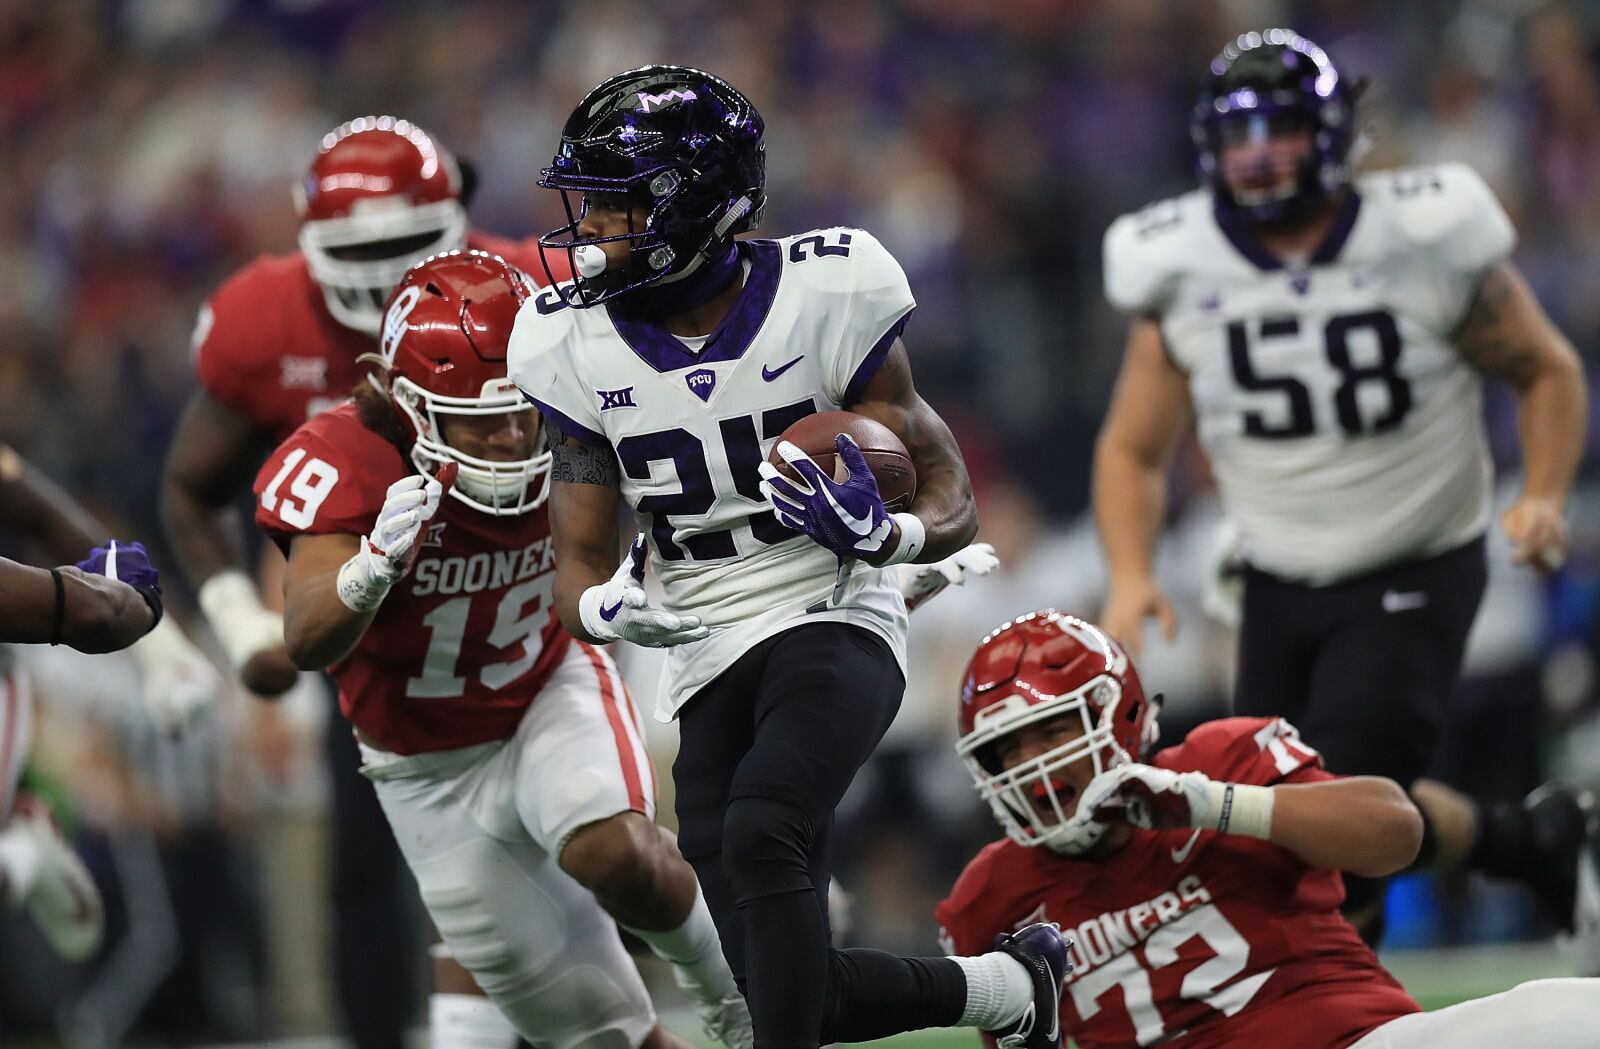 Oklahoma football: Sooners look to rebound with a must game at TCU